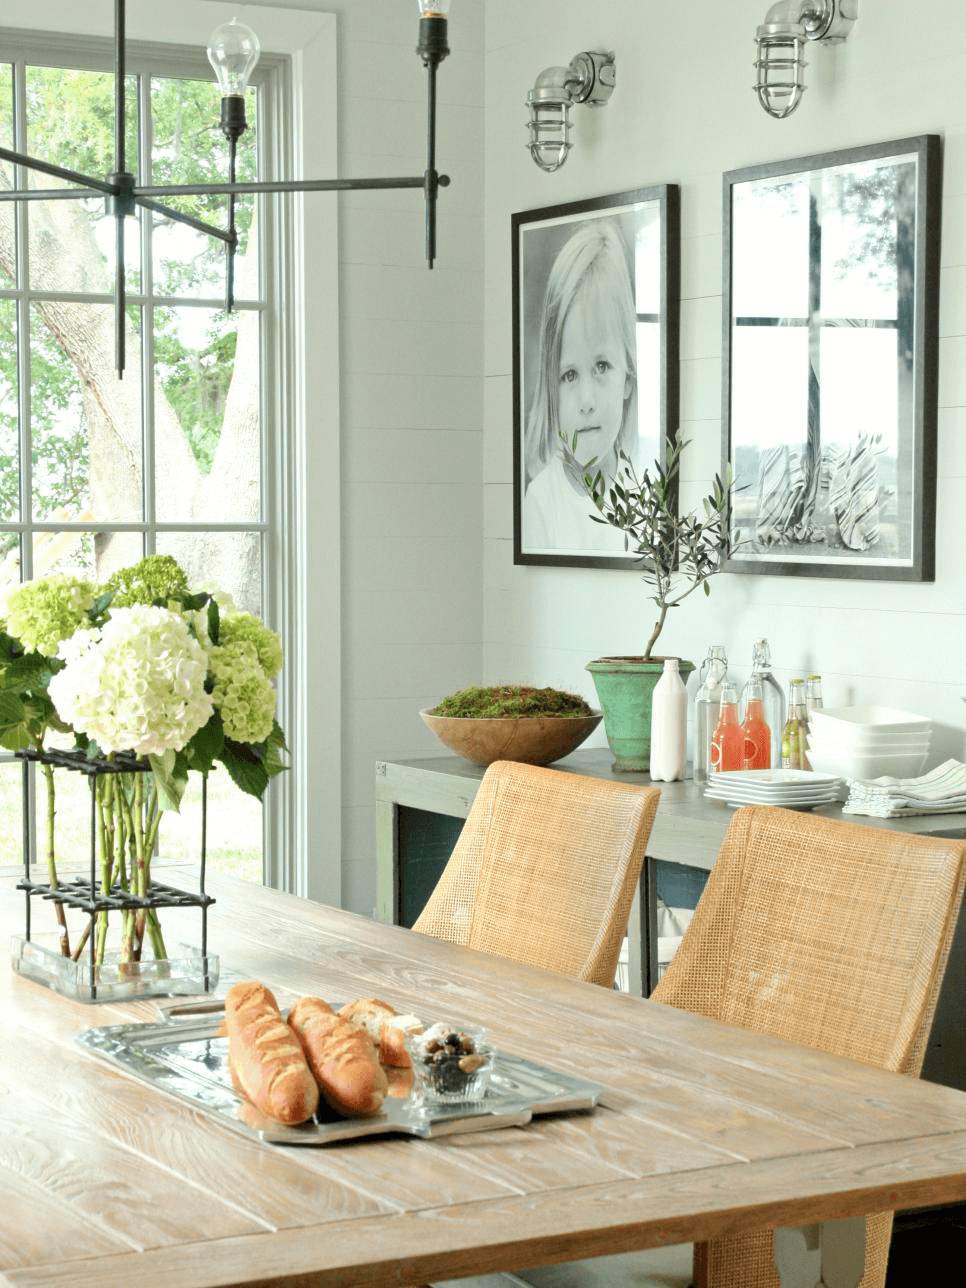 Side dining table decor with frame or wall mirror ideas